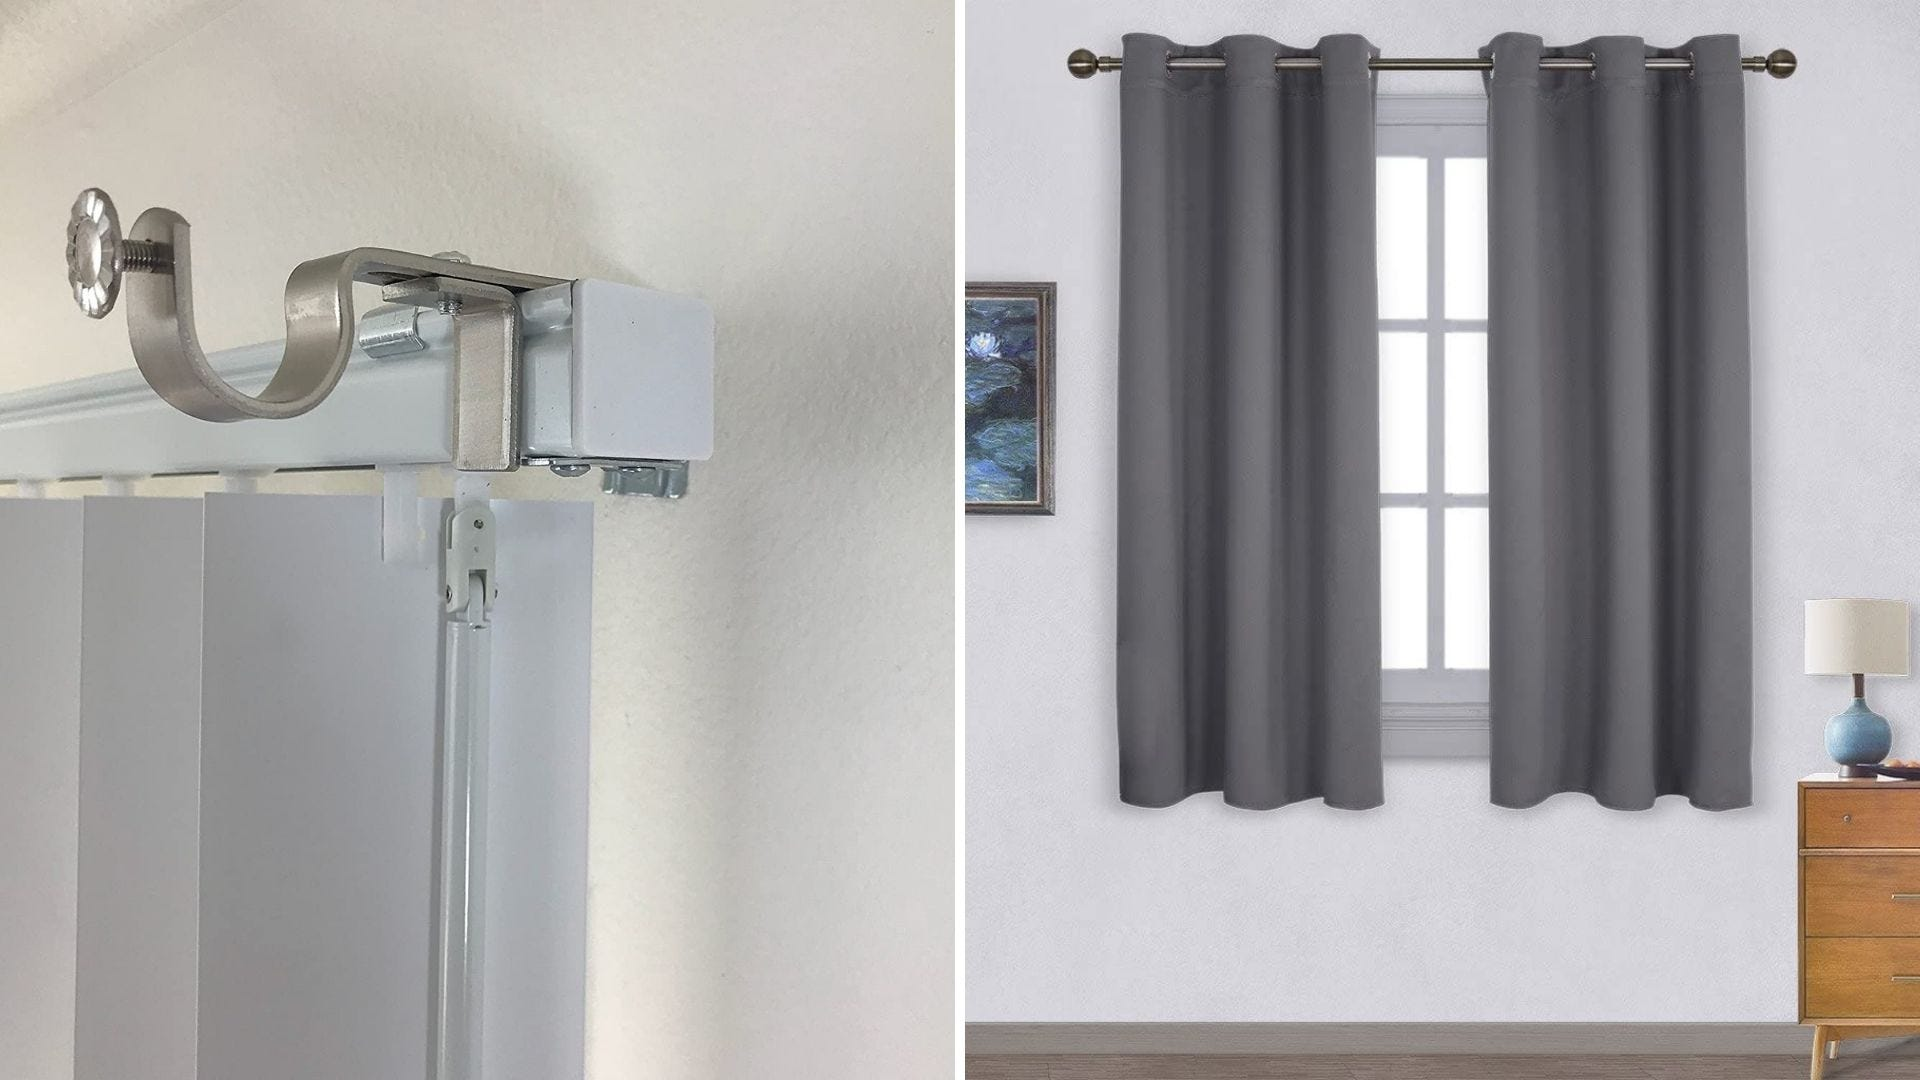 A metal bracket installed on top of a curtain rod and a gray pair of curtains hanging in a window.